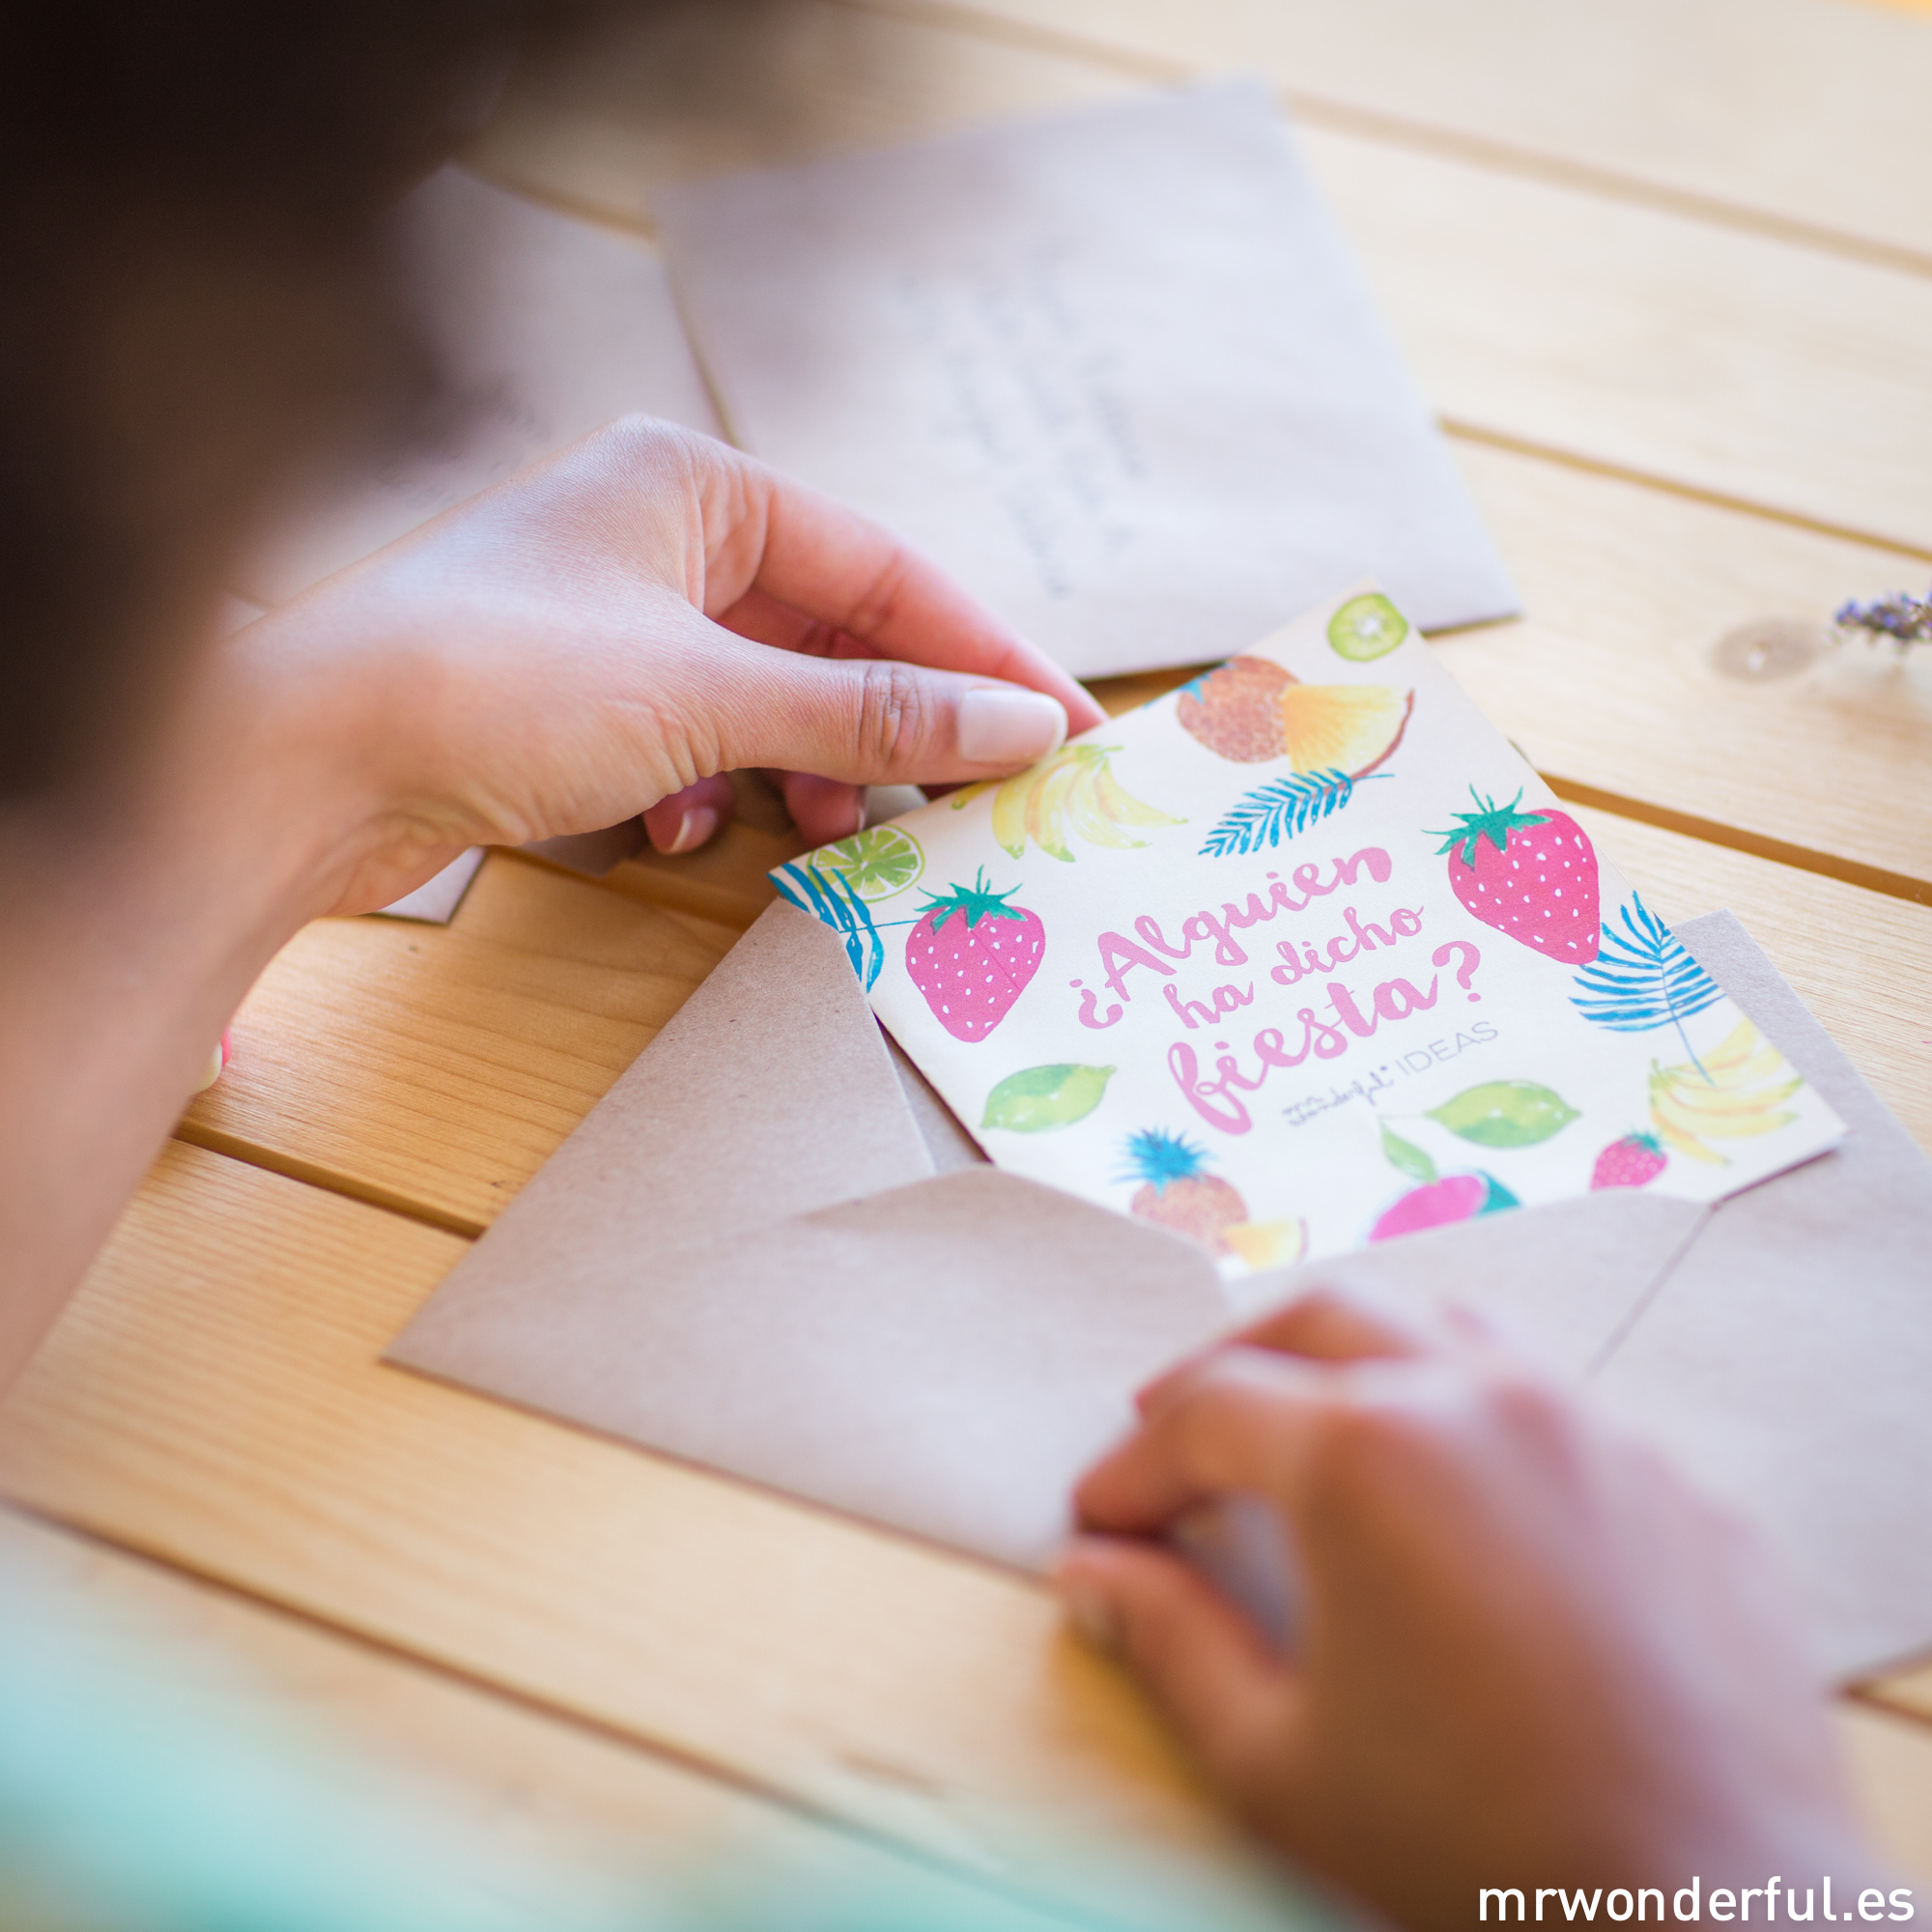 mrwonderful_revista-ideas_03_Junio-2015_FOTOS-TEASER-INVITACION-30